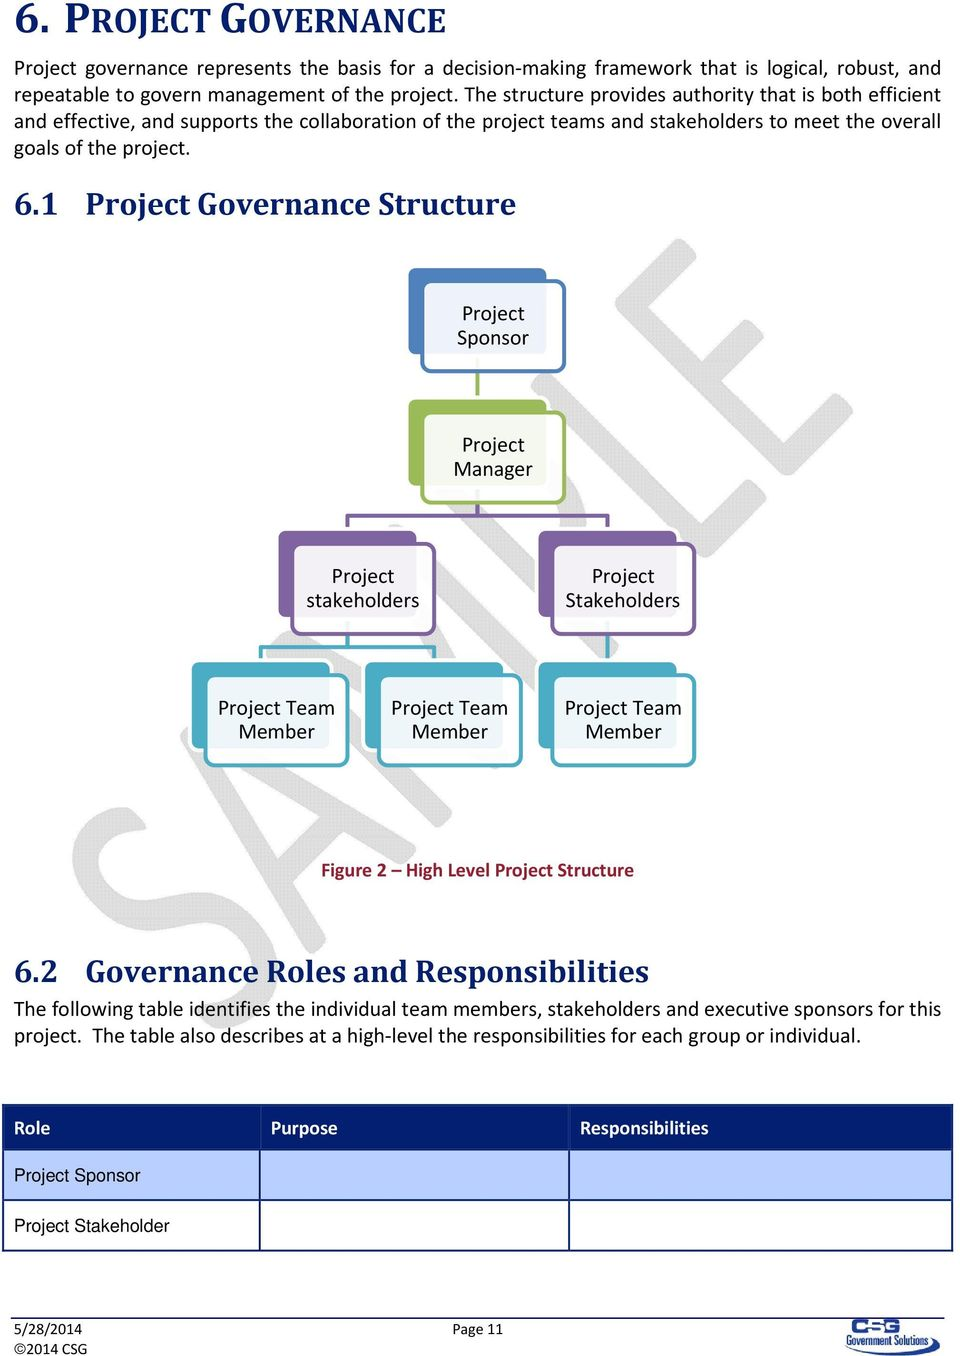 1 Project Governance Structure Project Sponsor Project Manager Project stakeholders Project Stakeholders Member Member Member Figure 2 High Level Project Structure 6.